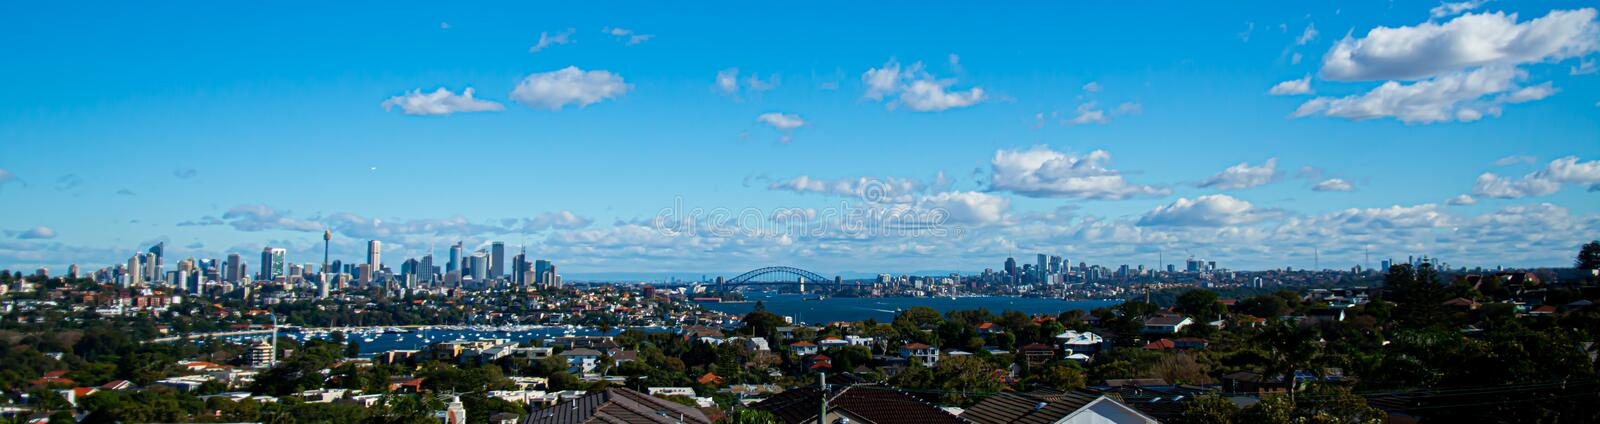 Beautiful panorama of a modern city with skyscrapers under a bright blue sky royalty free stock images